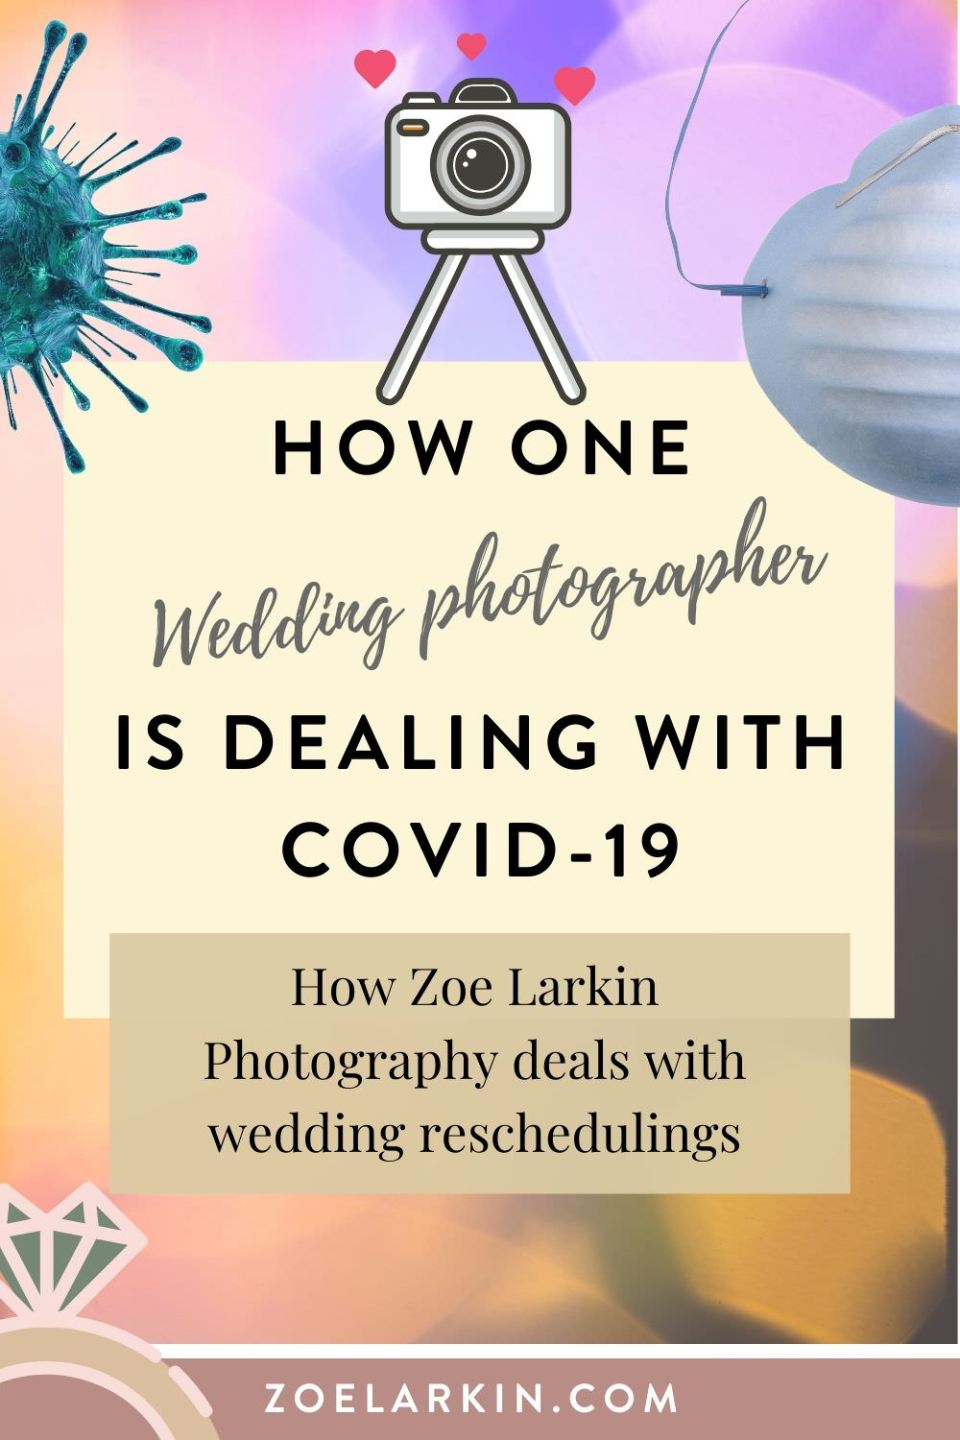 How one wedding photographer is dealing with wedding reschedules due to COVID-19. Zoe Larkin Photography is a Bay Area wedding photographer whose business has been impacted by COVID-19. In this article, I dive into how I help wedding couples who are deciding whether to cancel, postpone, or downsize their weddings. These are the policies that help support my couples during these difficult times. This is what works for my wedding business. #weddings #weddingvendors | Zoe Larkin Photography